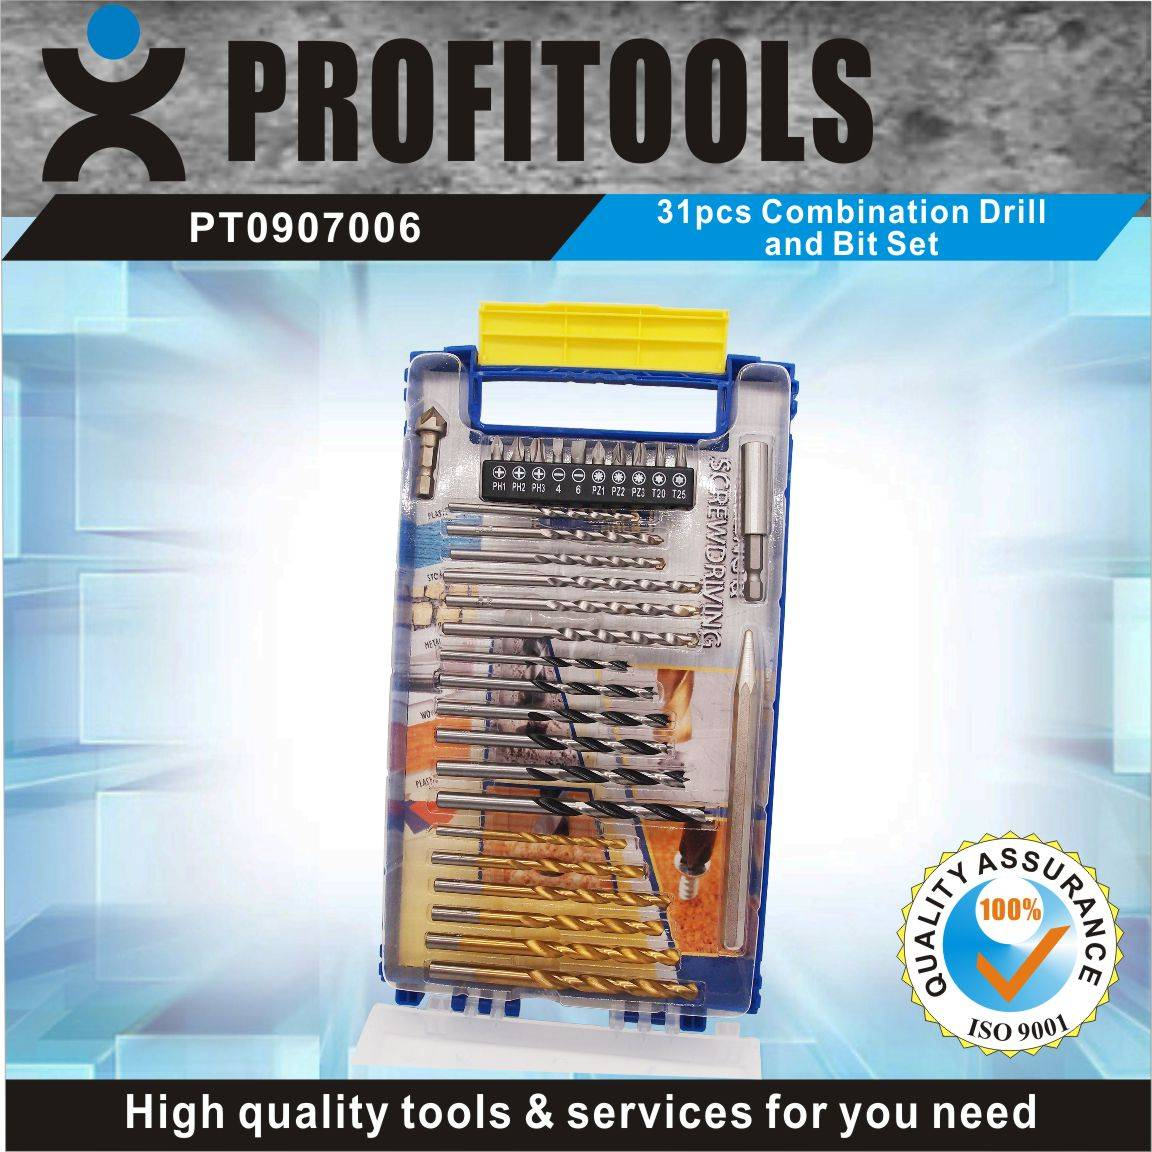 31pcs Combination Drill and Bit Set